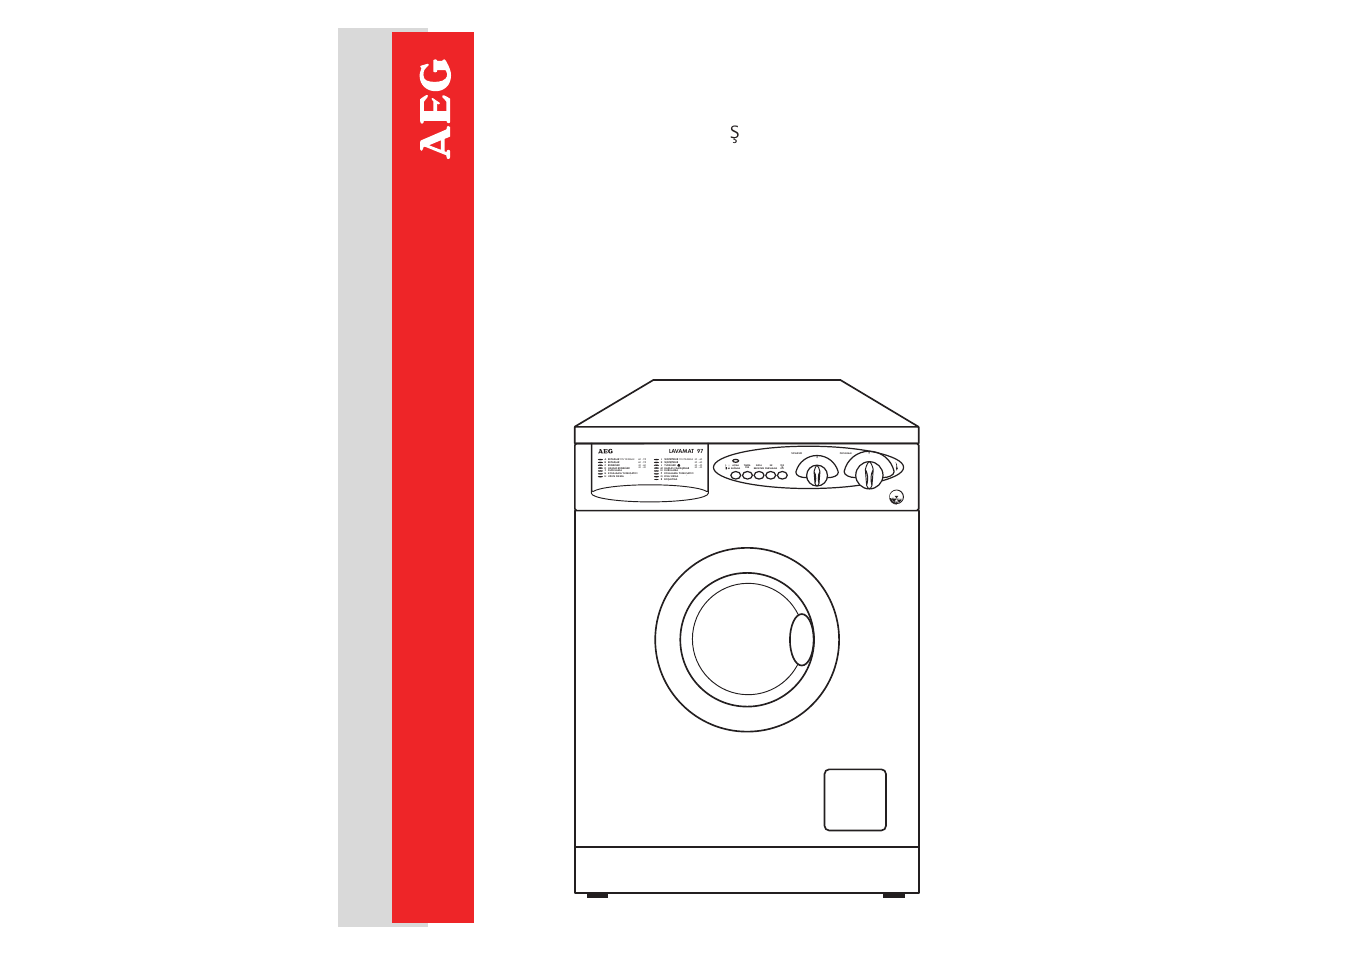 aeg lavamat 97 115 user manual 39 pages original mode. Black Bedroom Furniture Sets. Home Design Ideas